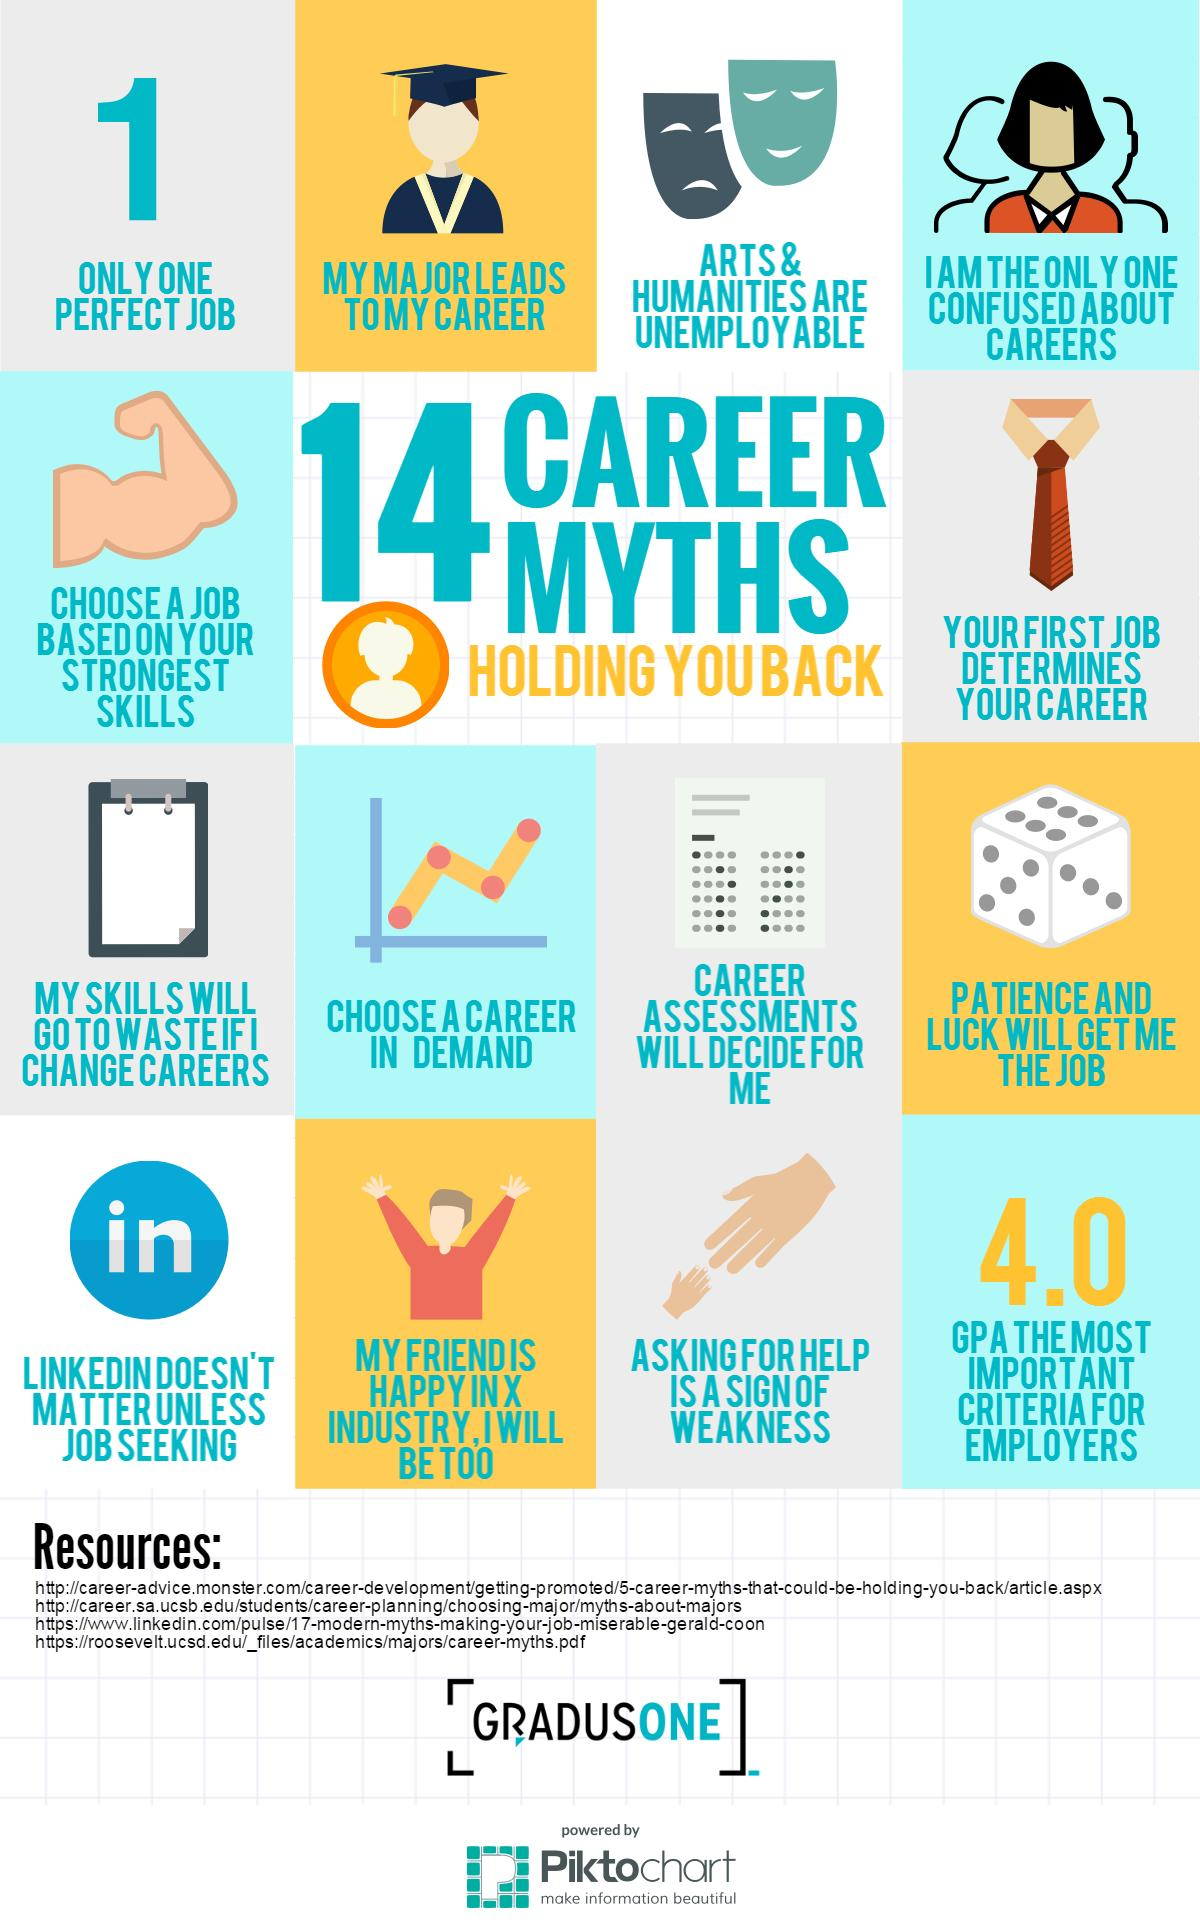 14 Career Myths That Is Holding You Back